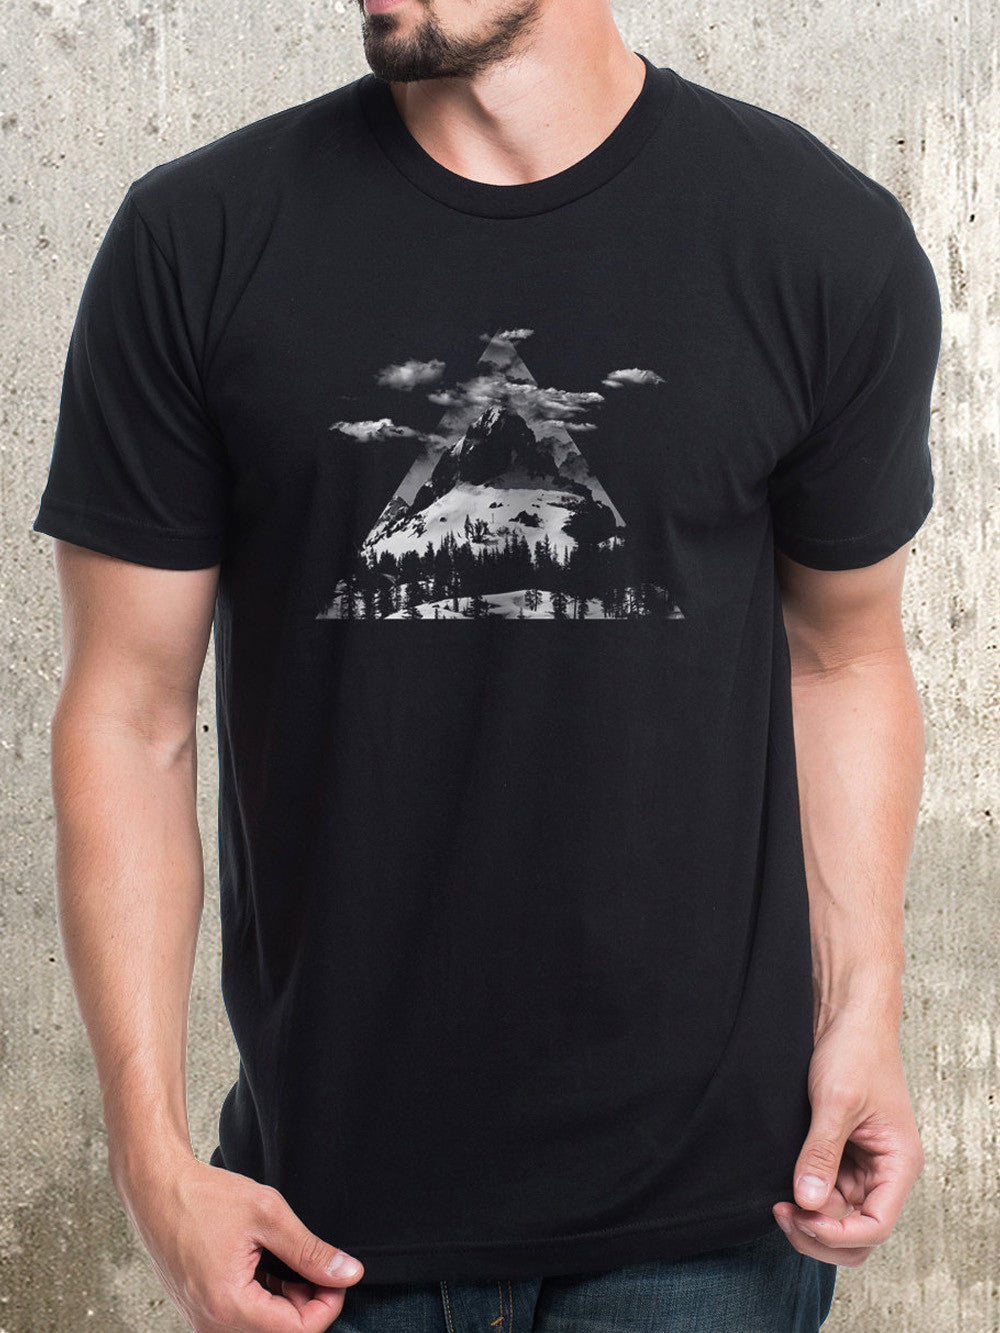 Mountains Clouds And Triangles T Shirt